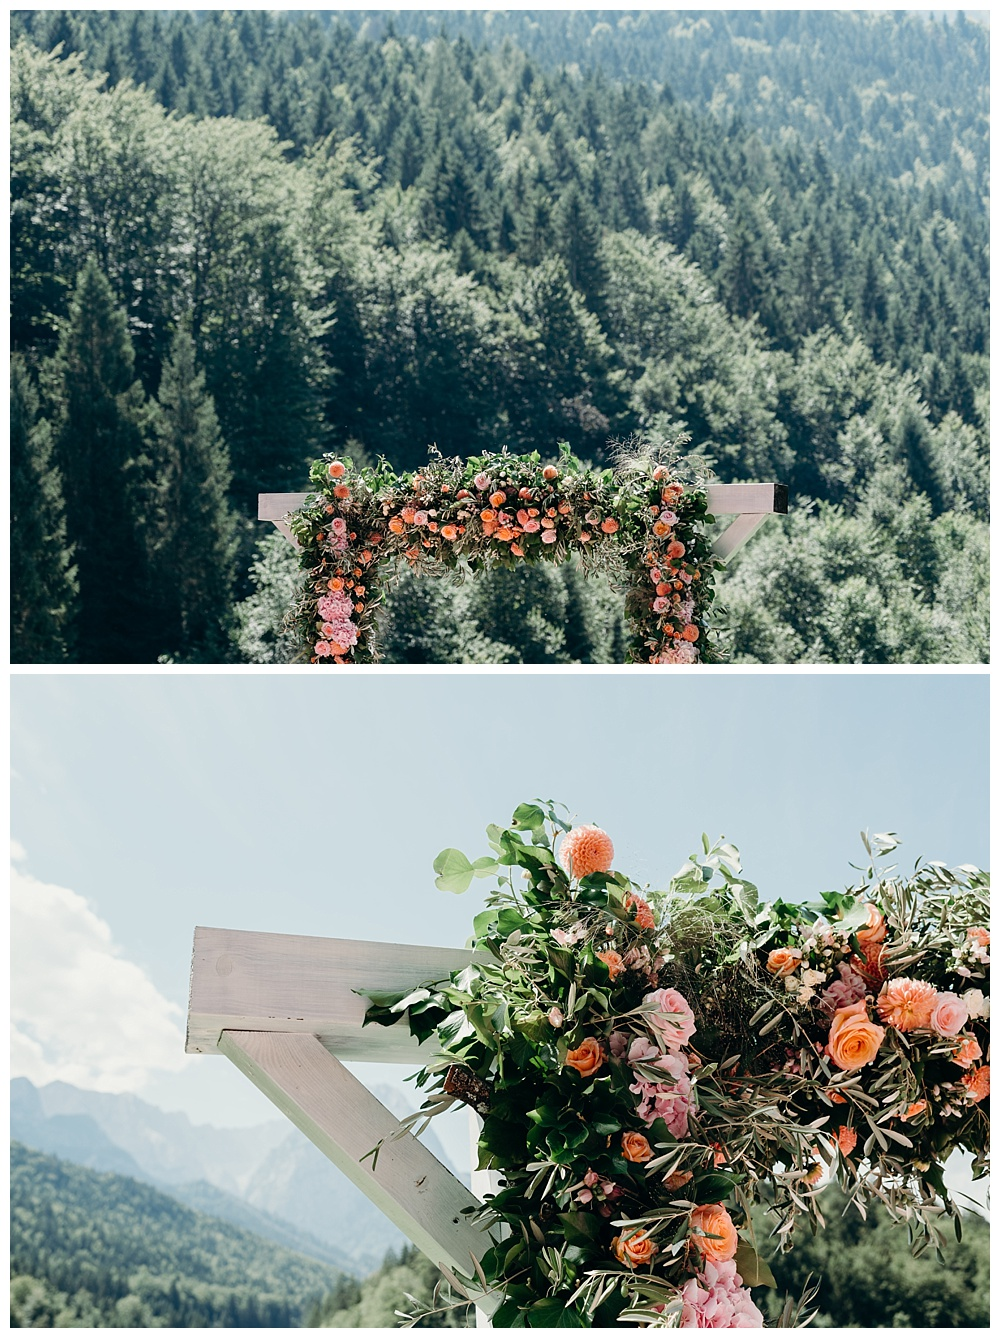 Alpine wedding ceremony flower arch